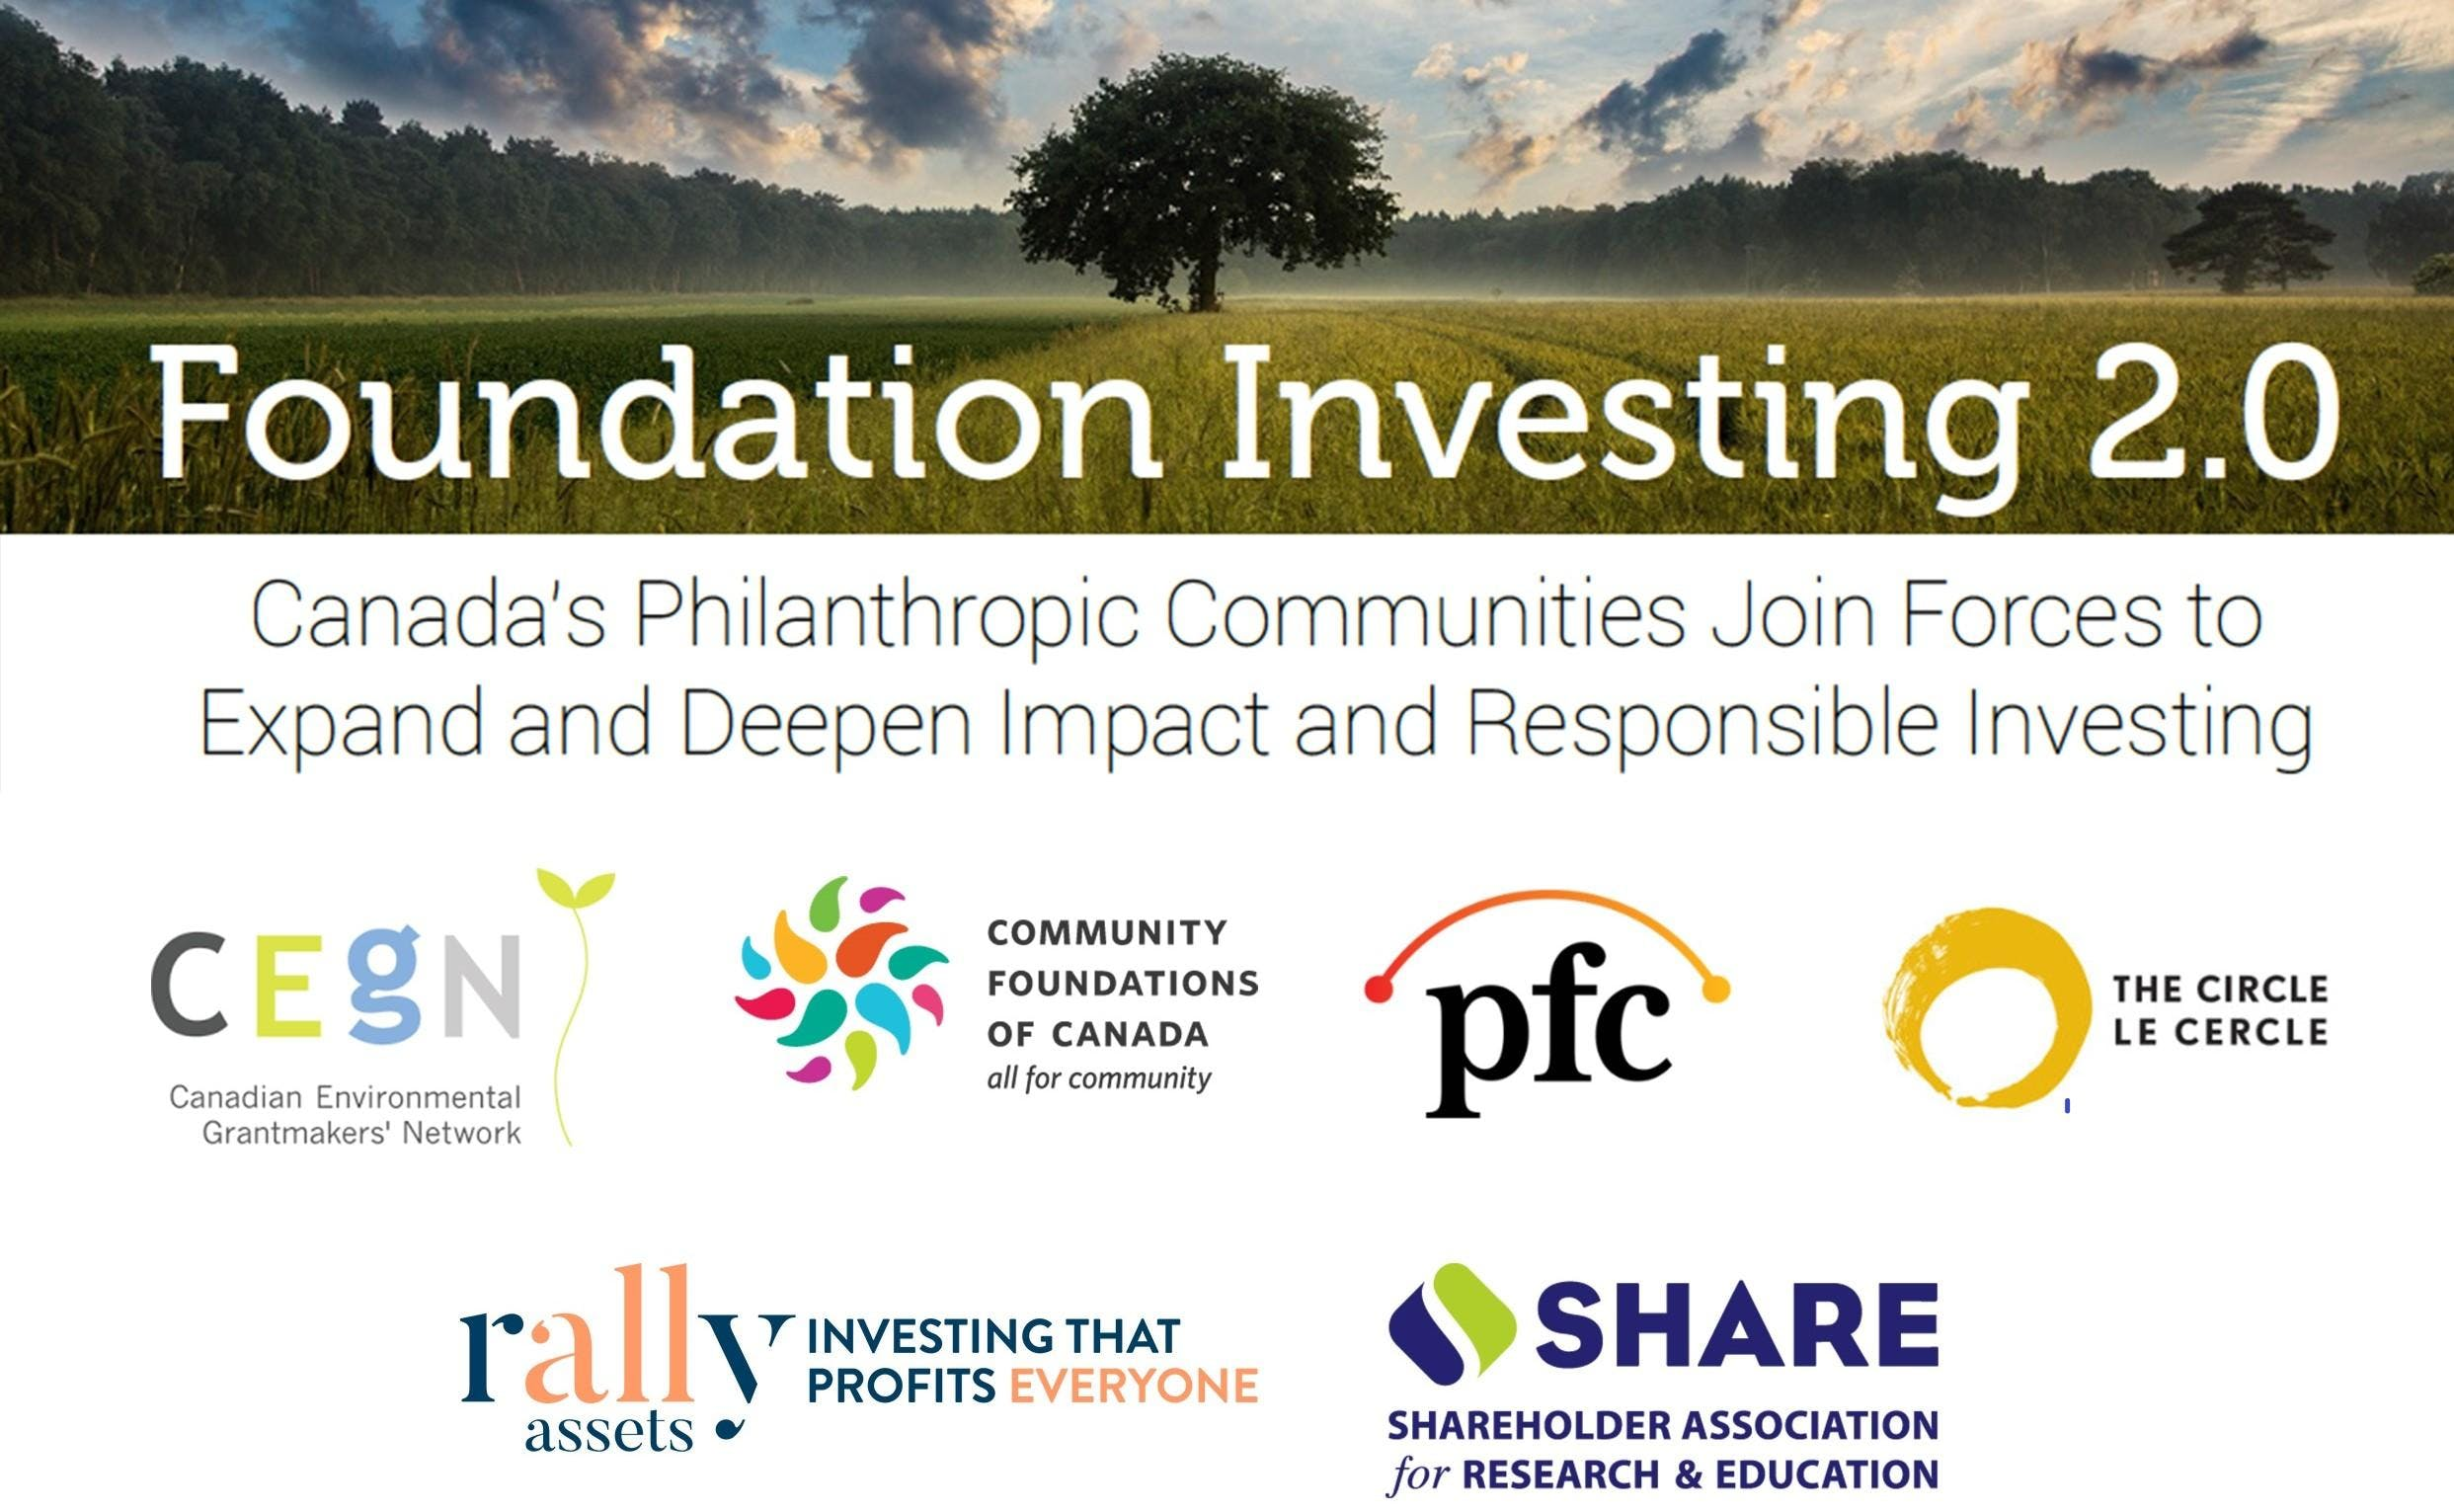 From Intent to Action: Laying the Foundations of Responsible and Impact Investing